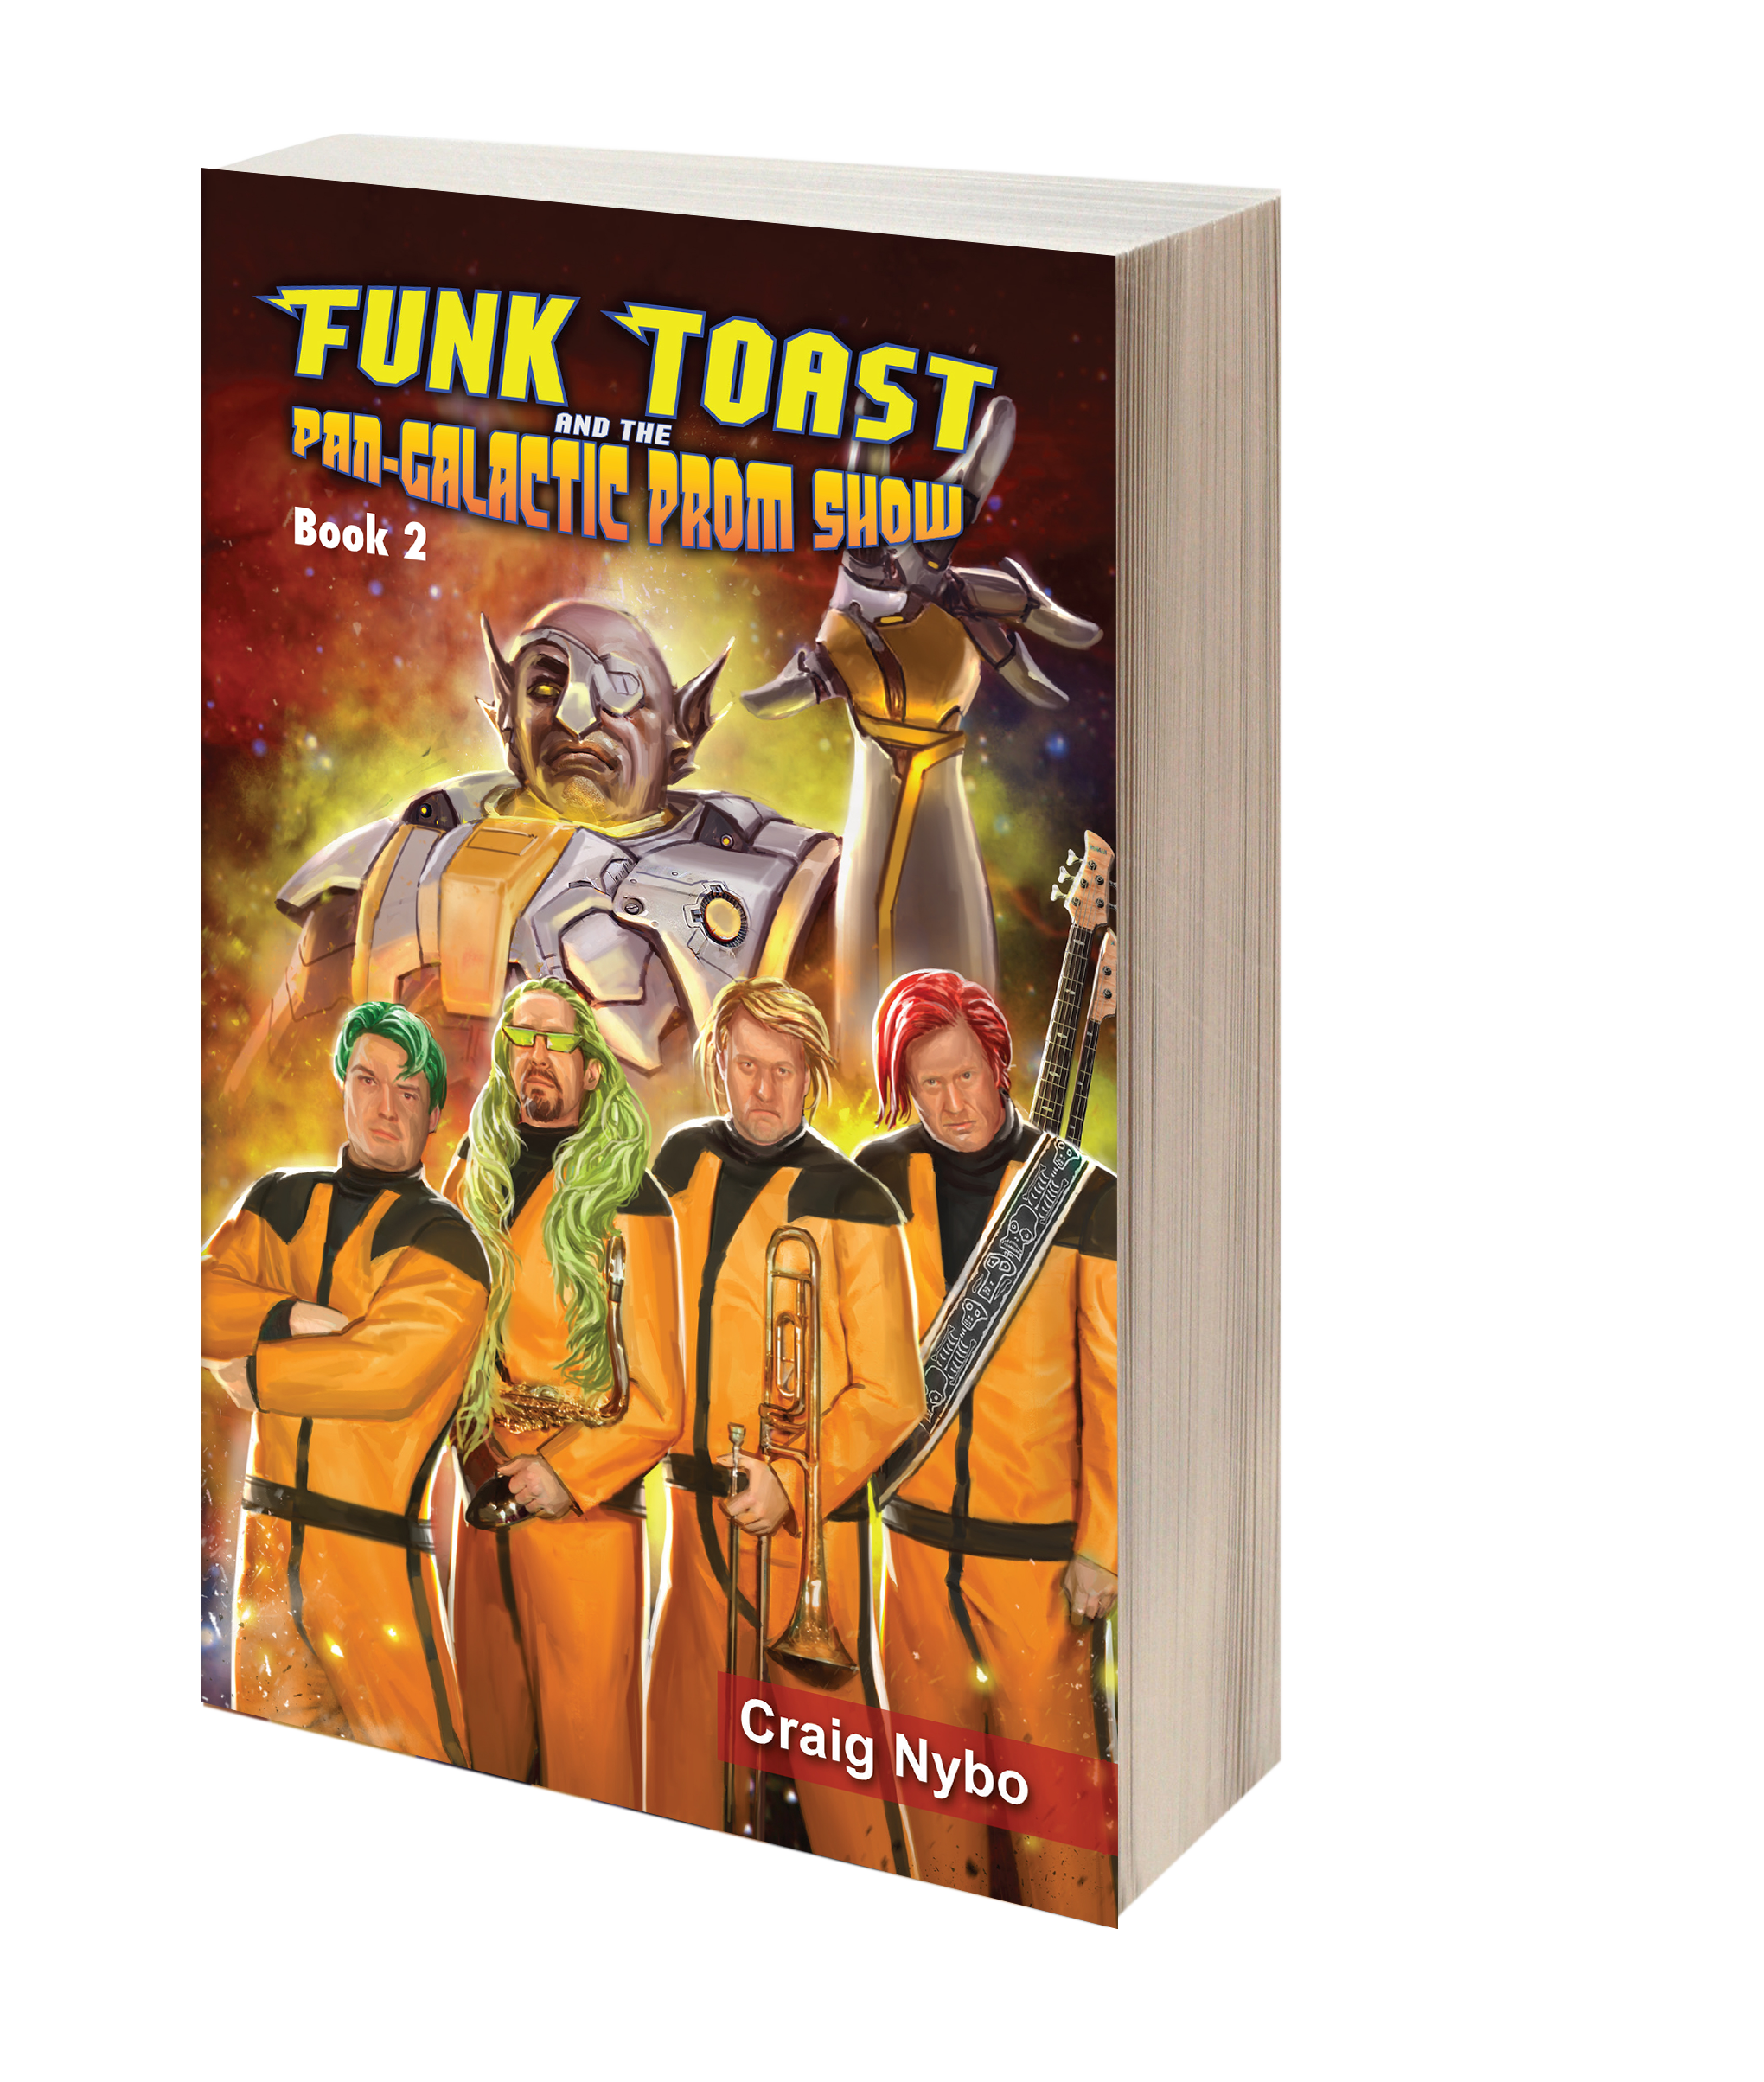 Book - Funk Toast and the Pan-Galactic Prom